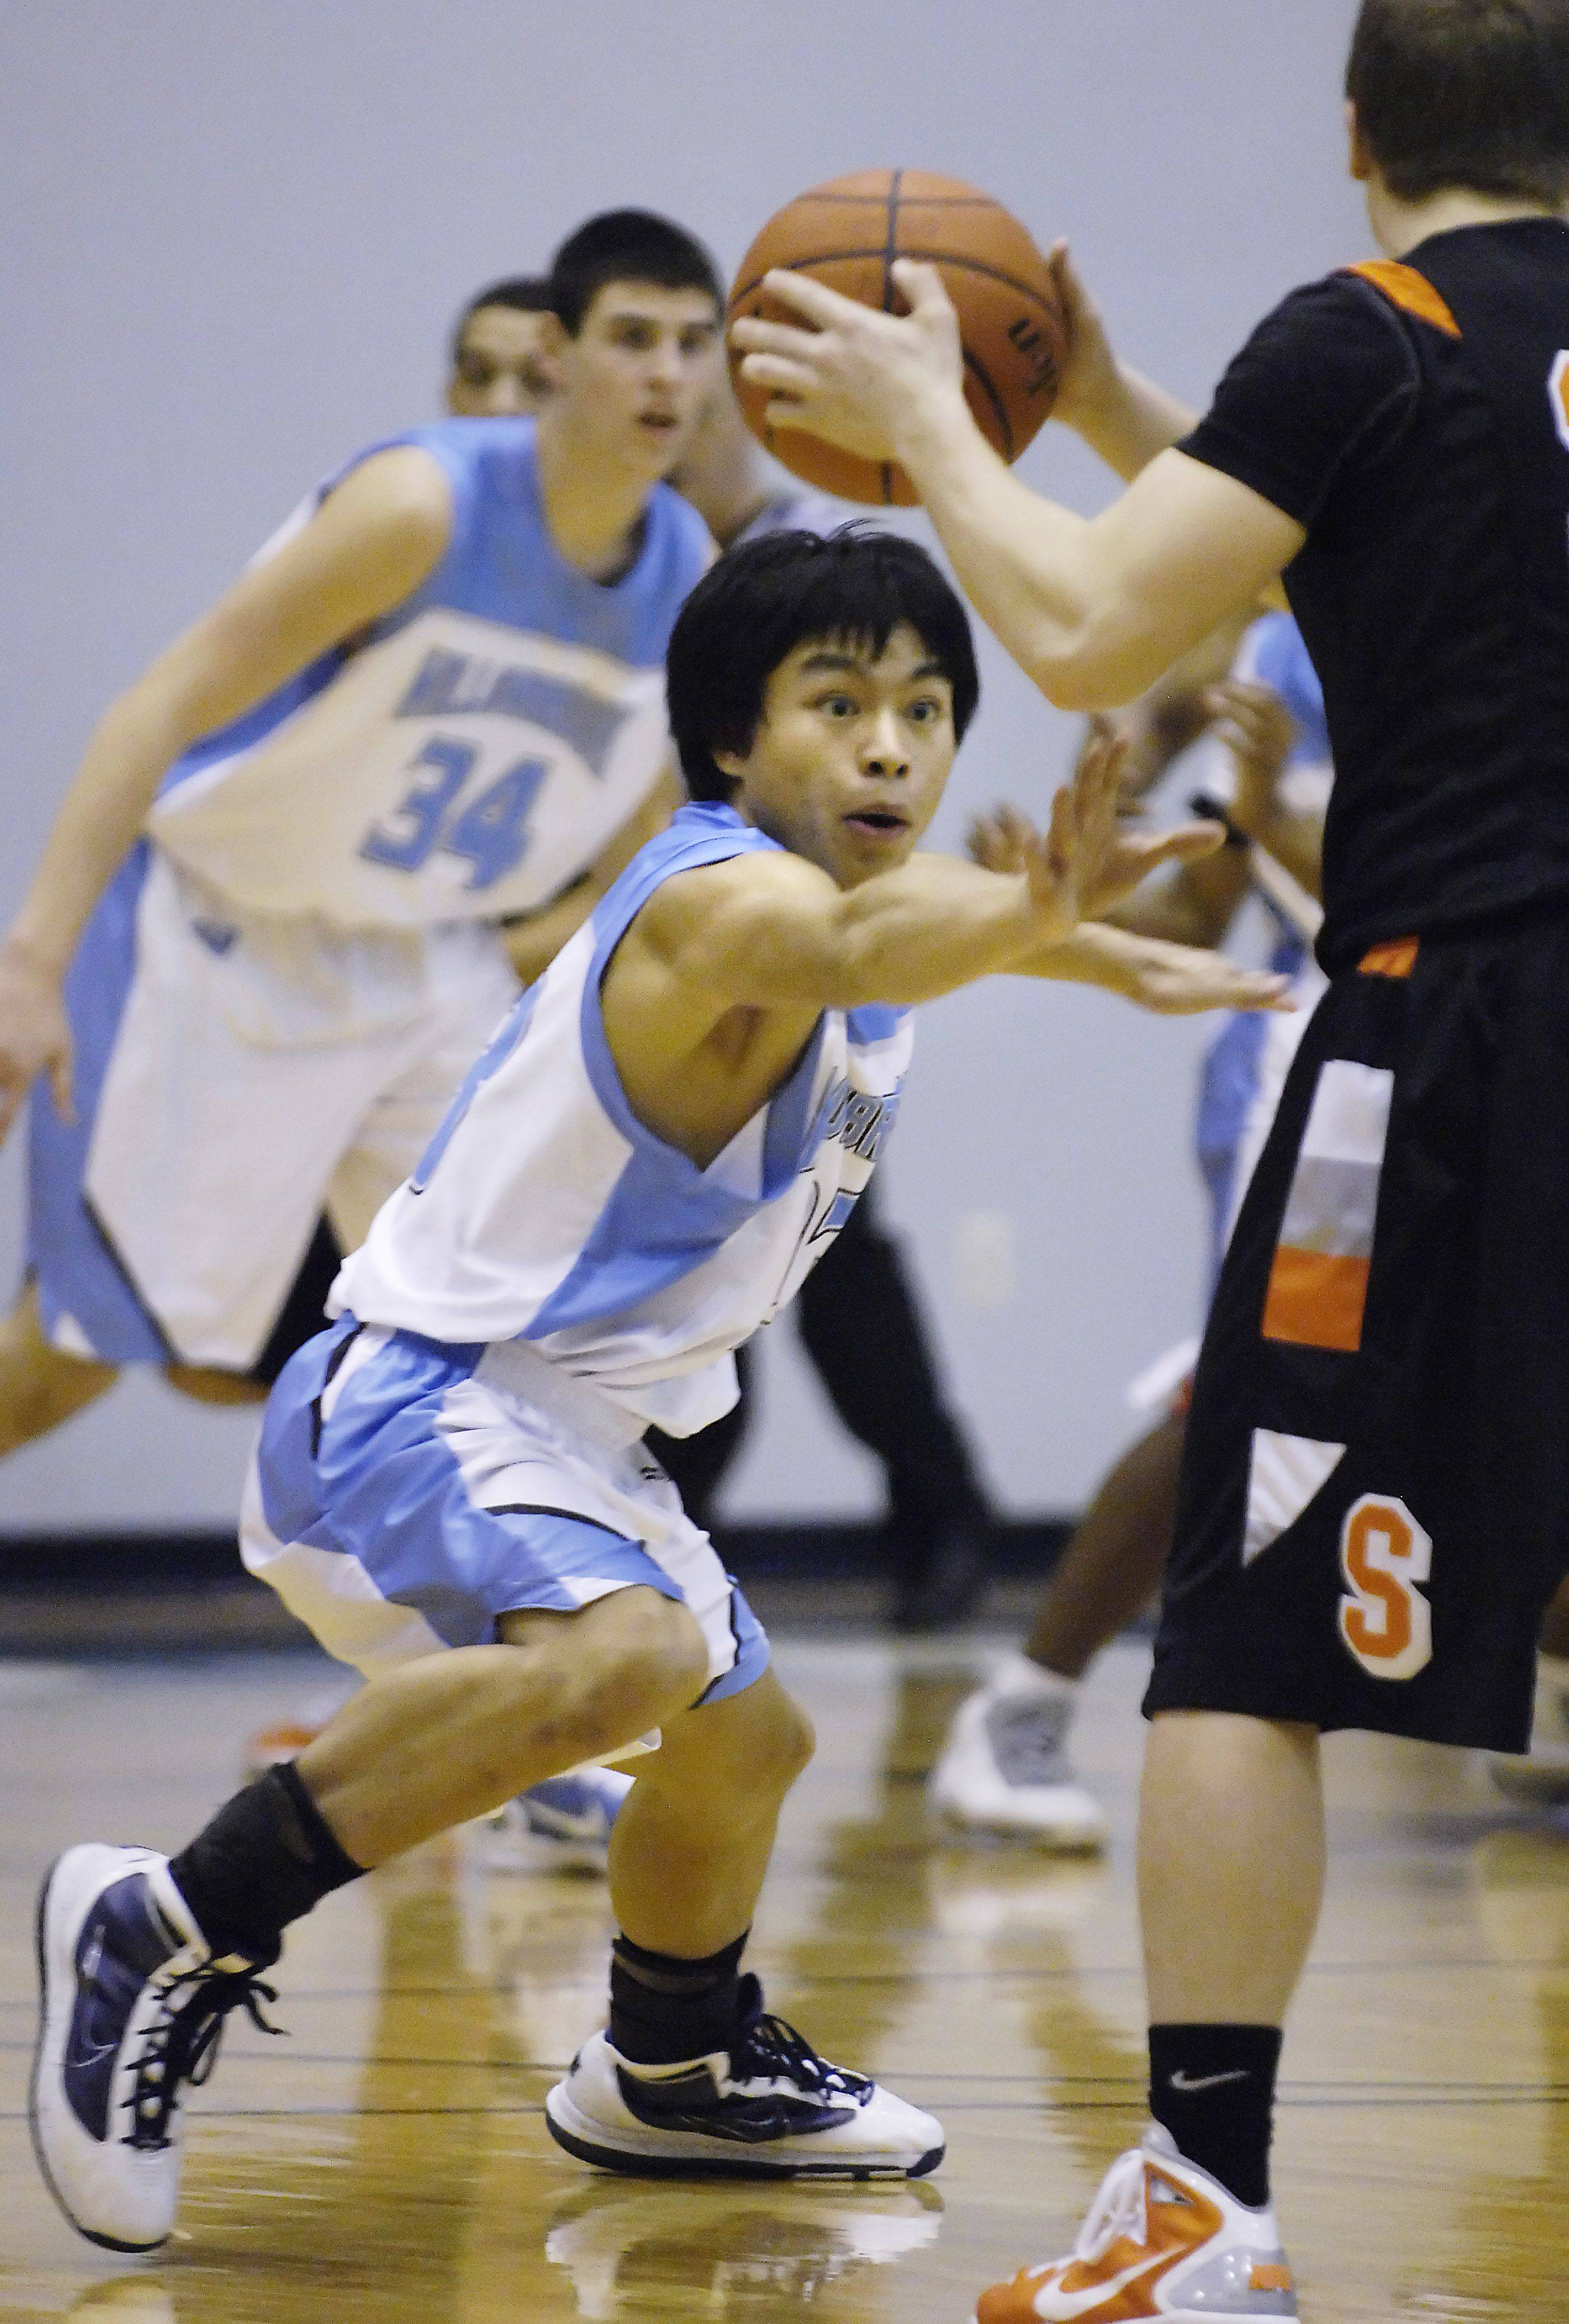 Willowbrook's Raphael Garcia defends St. Charles East's Zach Zajicek.